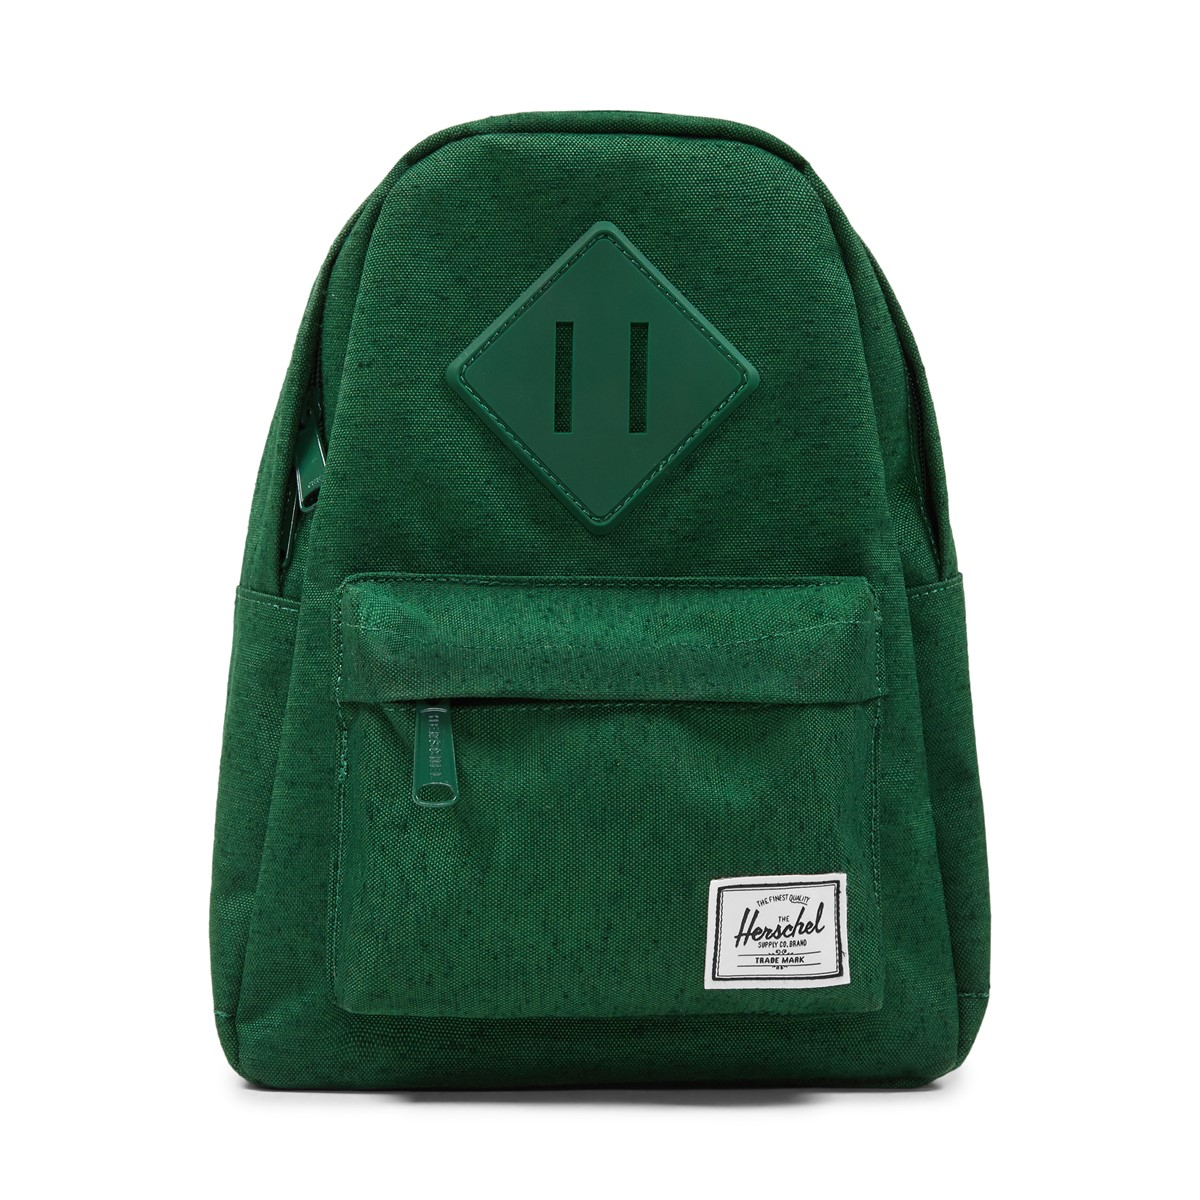 Heritage Mini Backpack in Forest Green